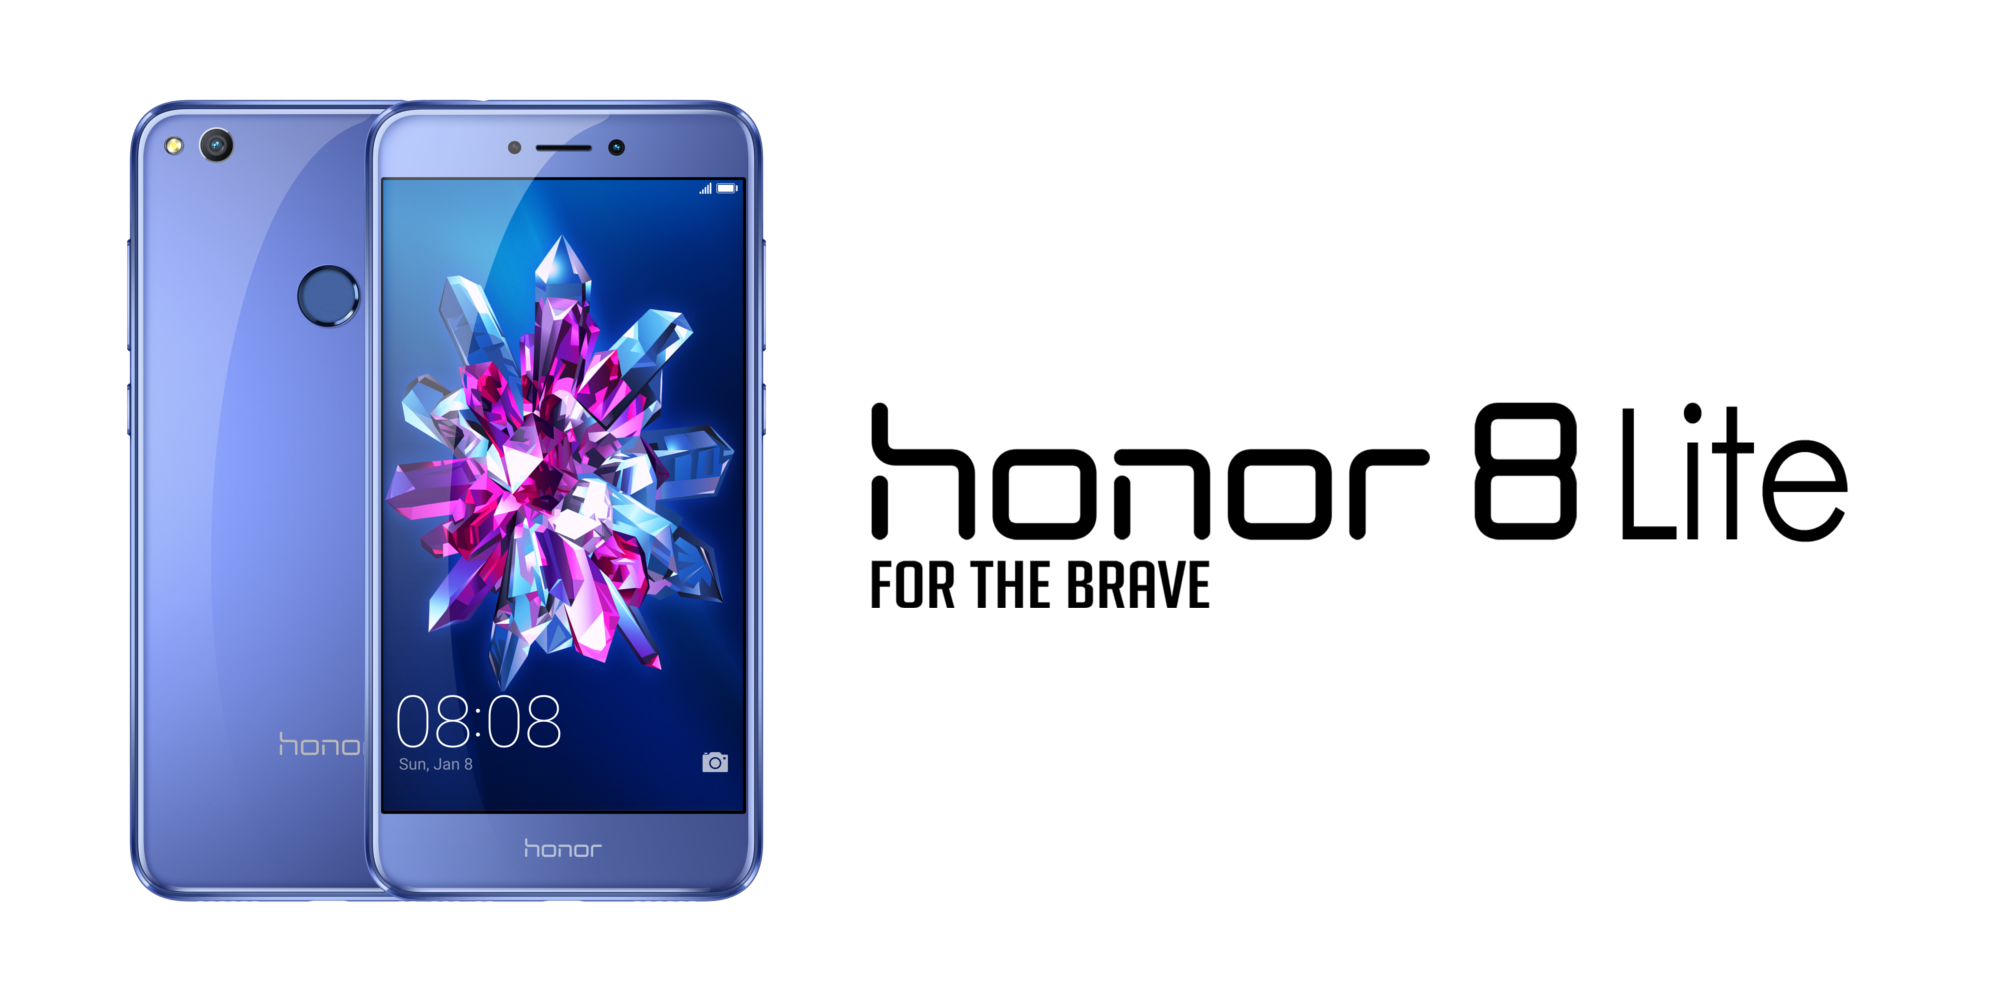 Huawei Honor 8 Lite launches with 12MP camera, Android 7.0 ...